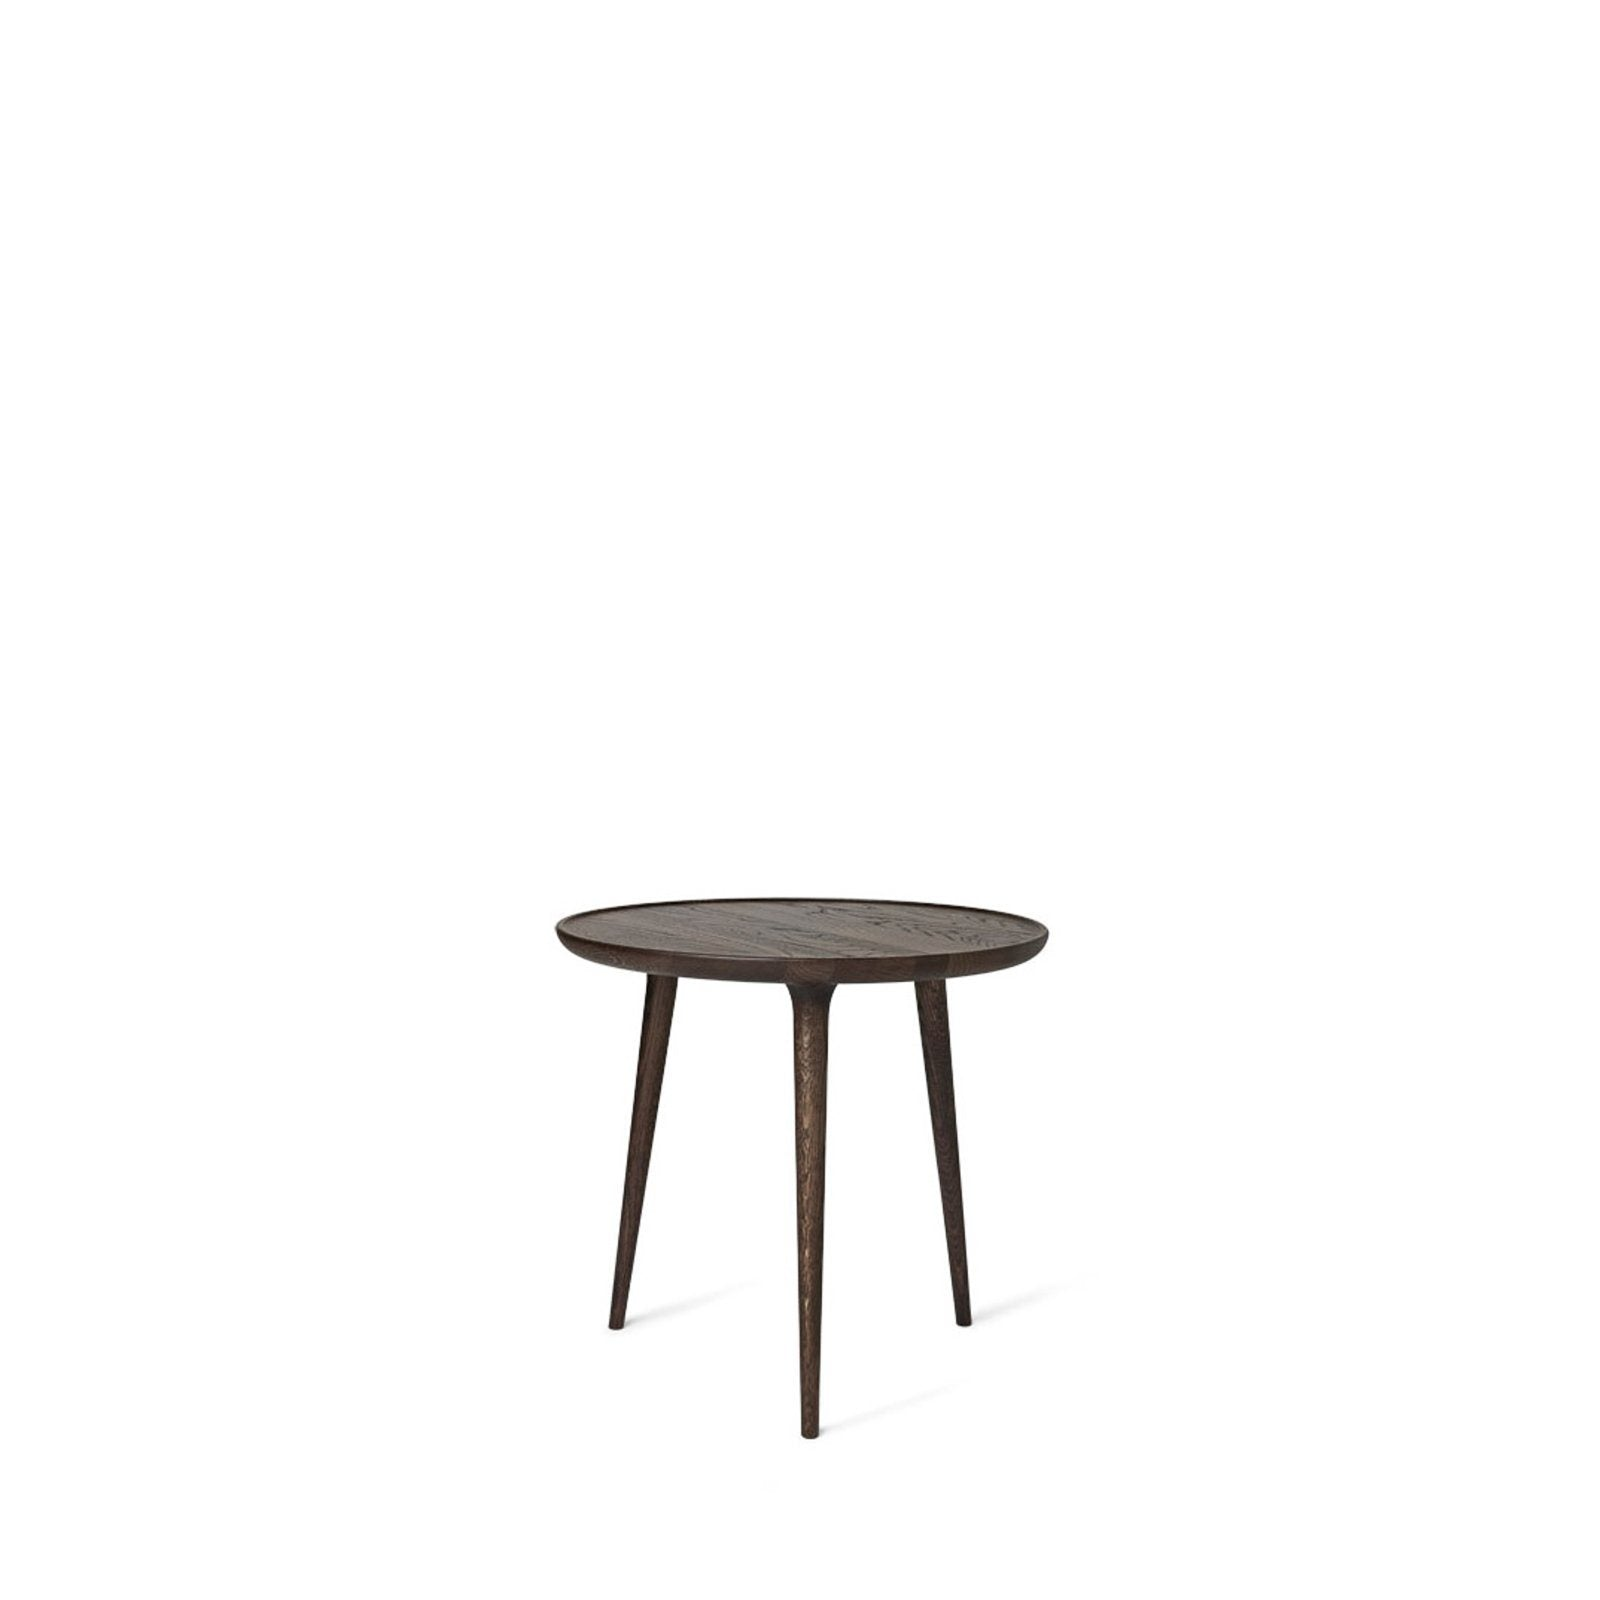 Merveilleux Tables U003e Side Table   Small Accent Table In Sirka Gray ...